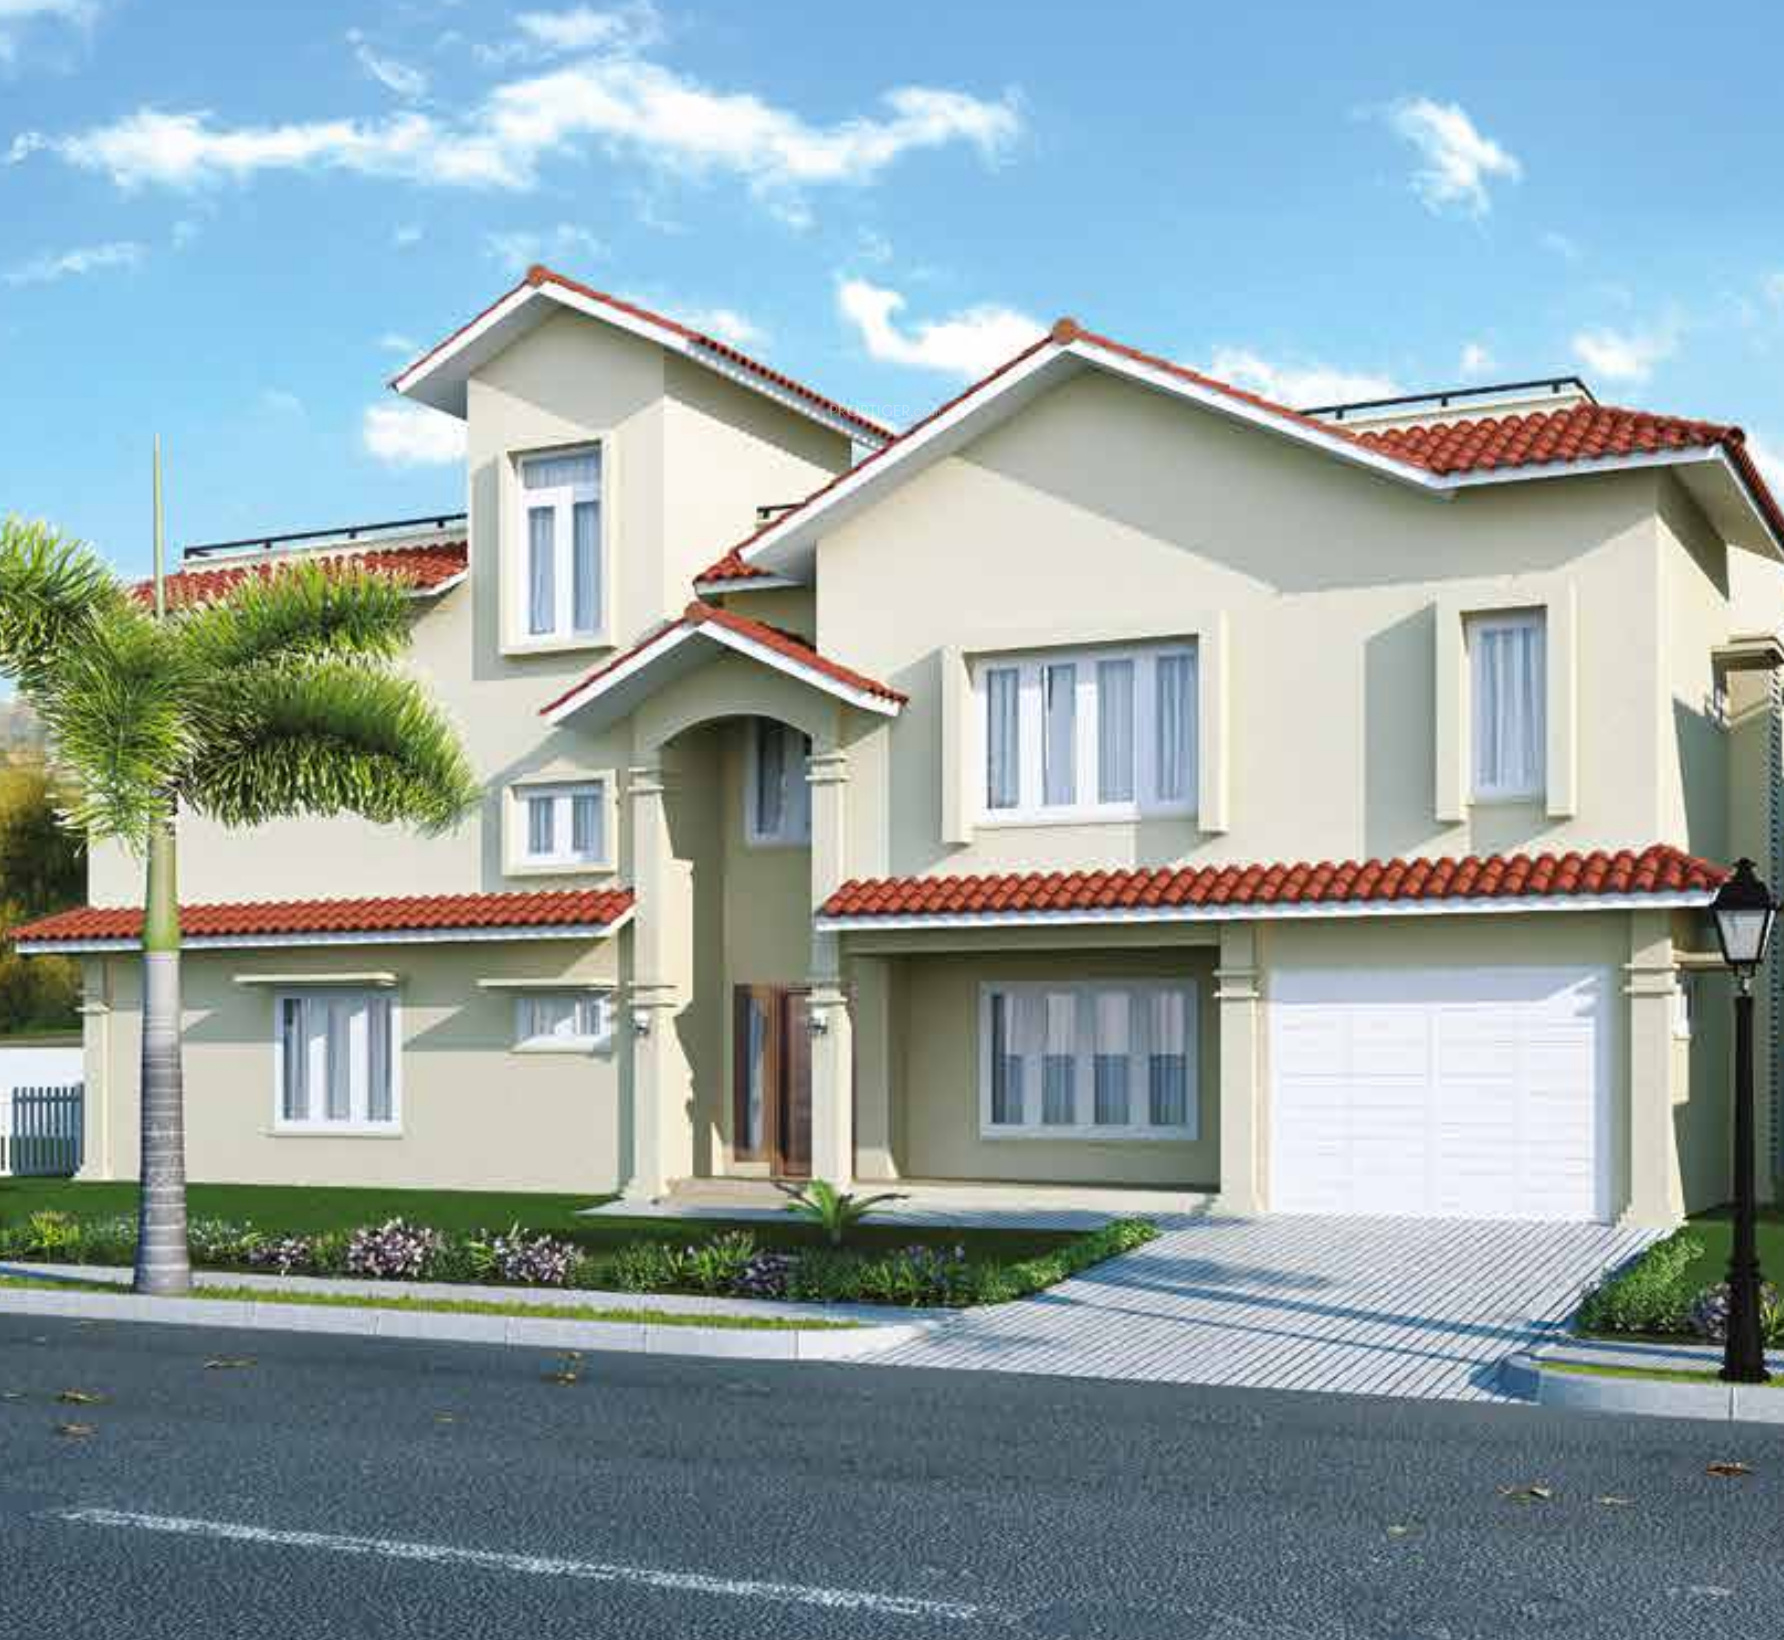 Luxury House in Bangalore - Buy Luxury Independent Villas for sale